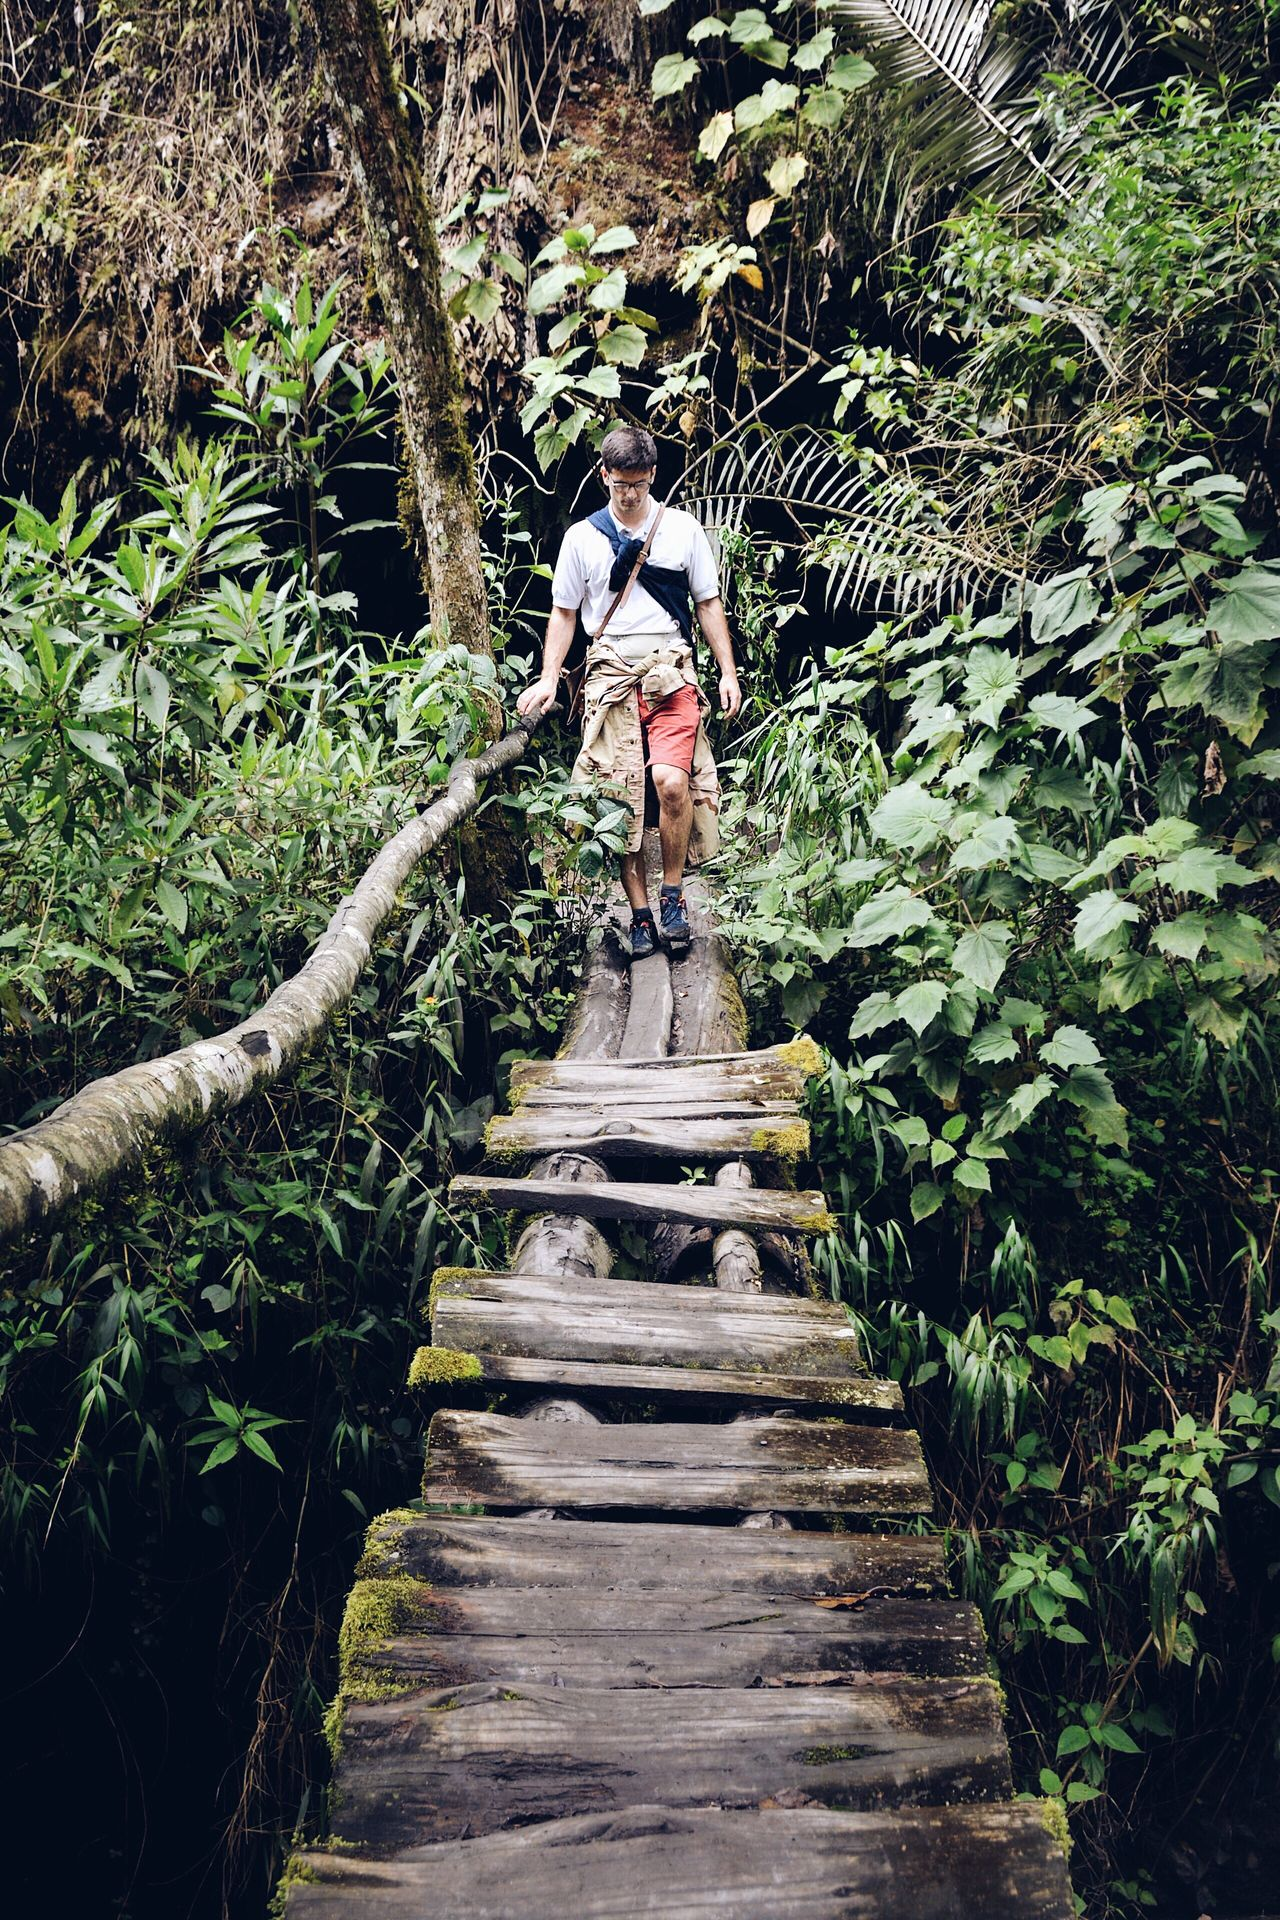 You don't know if it is going to fall apart. You just have to make a leap of faith. One Person Real People Outdoors Nature Steps And Staircases The Way Forward People Colombia Tropical Forest Wildlife & Nature Trekking Exploring Landscape Adventure Men Crossing Crossing The Bridge